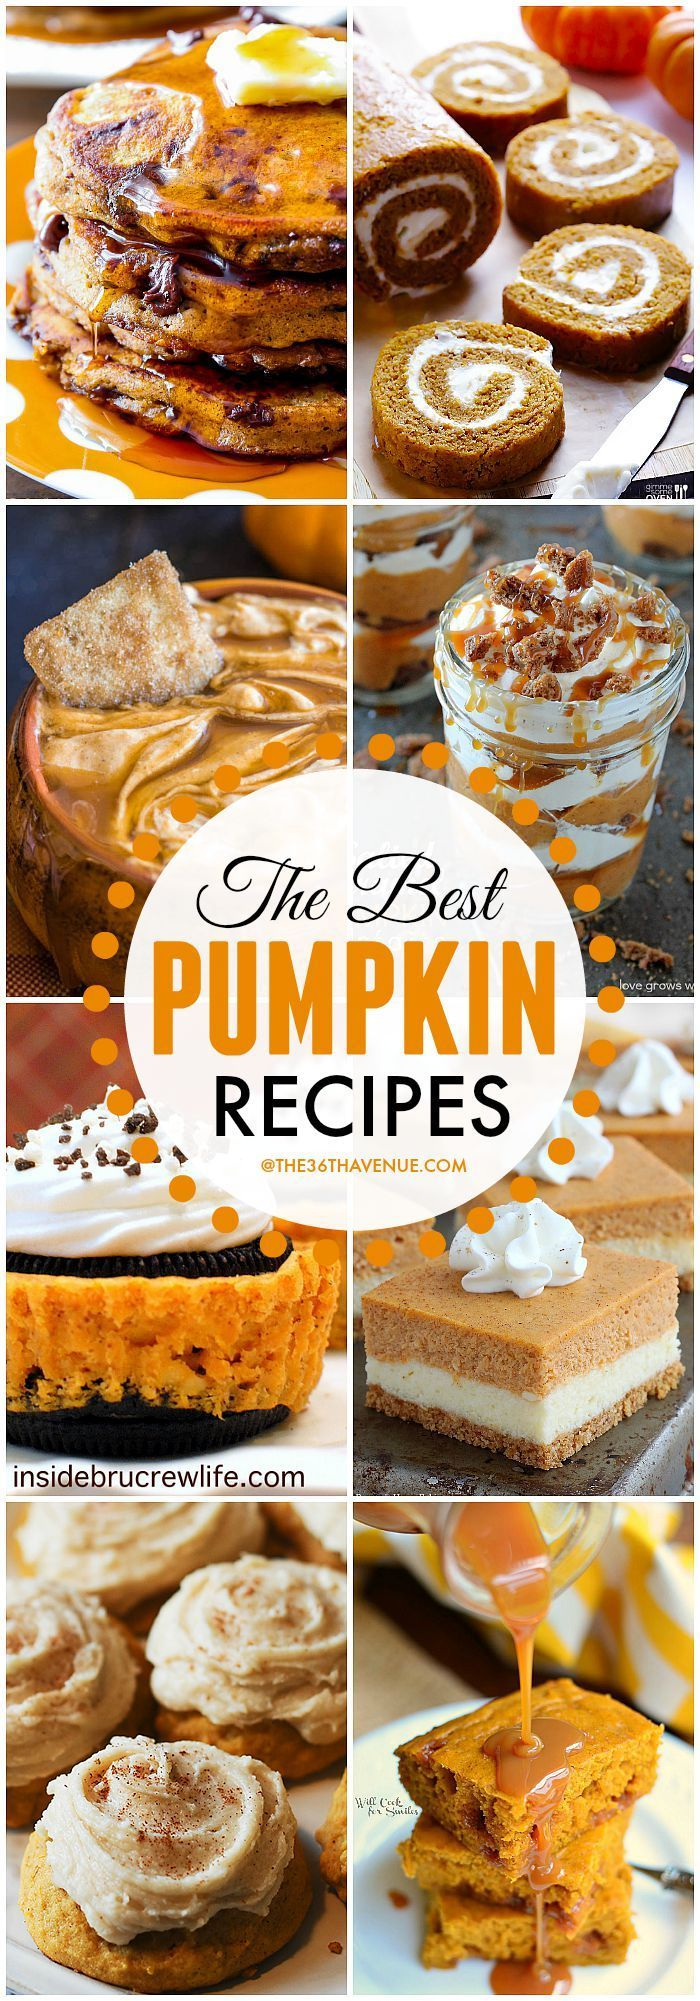 Best Pumpkin Recipes ... These are super good! desserts, baked goods, fall recipes,